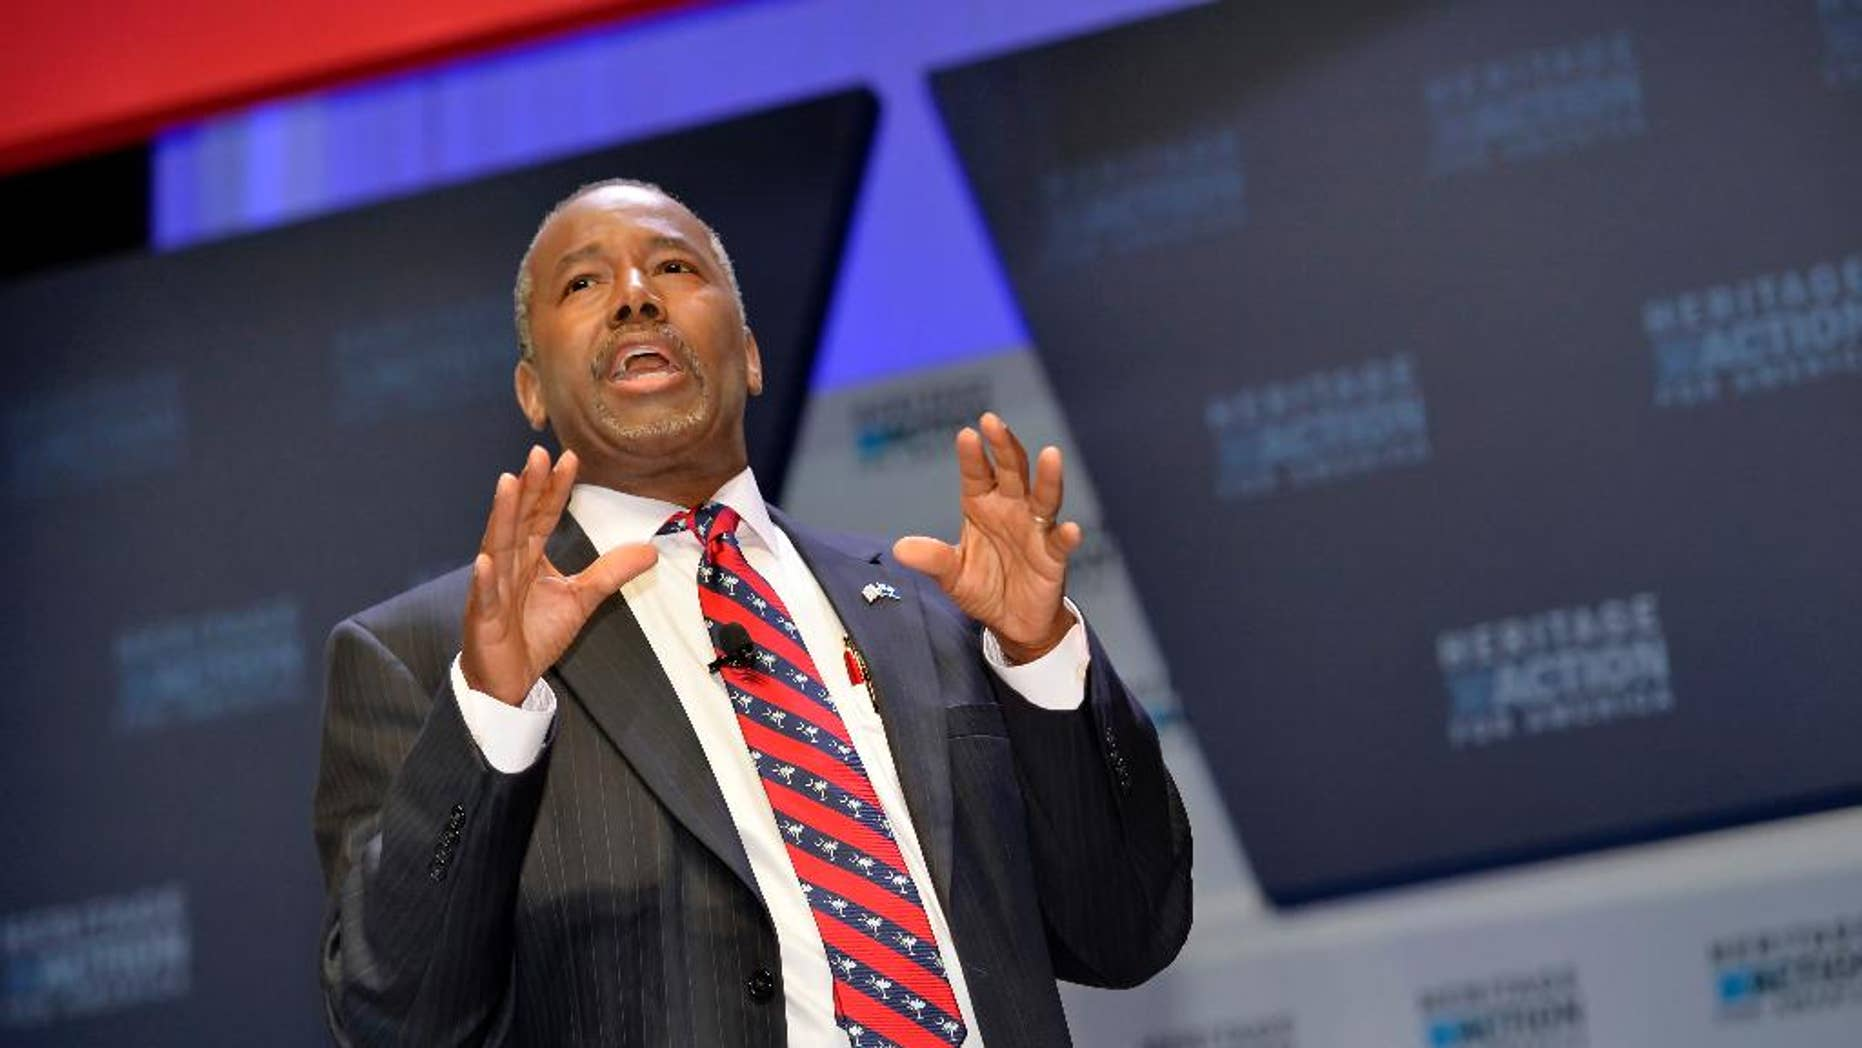 FILE - In this Sept. 18, 215 file photo, Republican presidential candidate Ben Carson speaks in Greenville, S.C. Carson is refusing to back off his weekend charge that Muslims shouldn't serve in the presidency. (AP Photo/Richard Shiro, File)